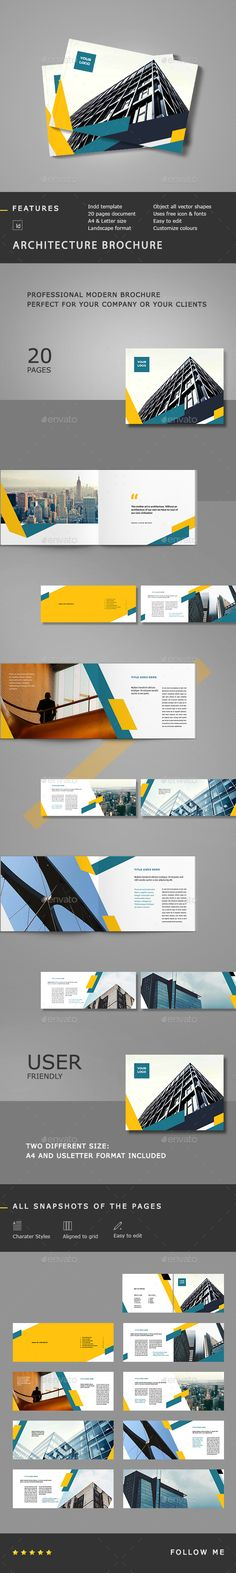 Architecture Landscape Brochure Template InDesign INDD #design Download: http://graphicriver.net/item/architecture-landscape-brochure/14209765?ref=ksioks